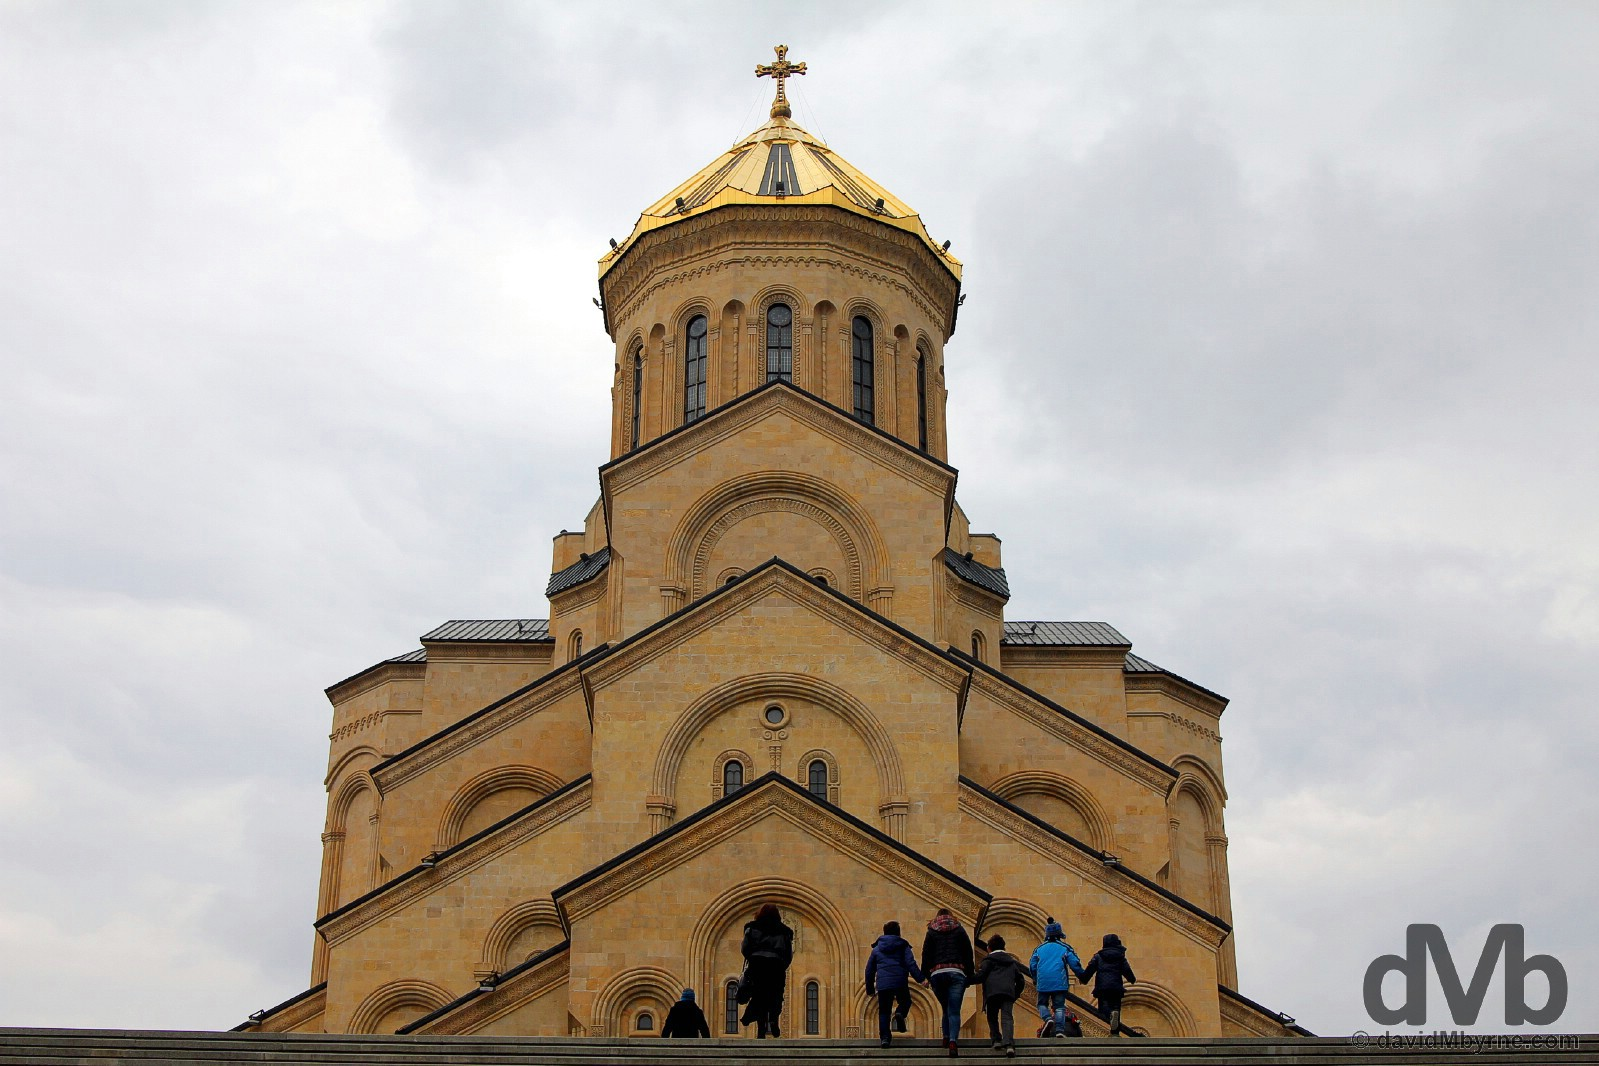 Climbing the steps fronting the massive Tsminda Sameba Cathedral in Tbilisi, Georgia. March 19, 2015.